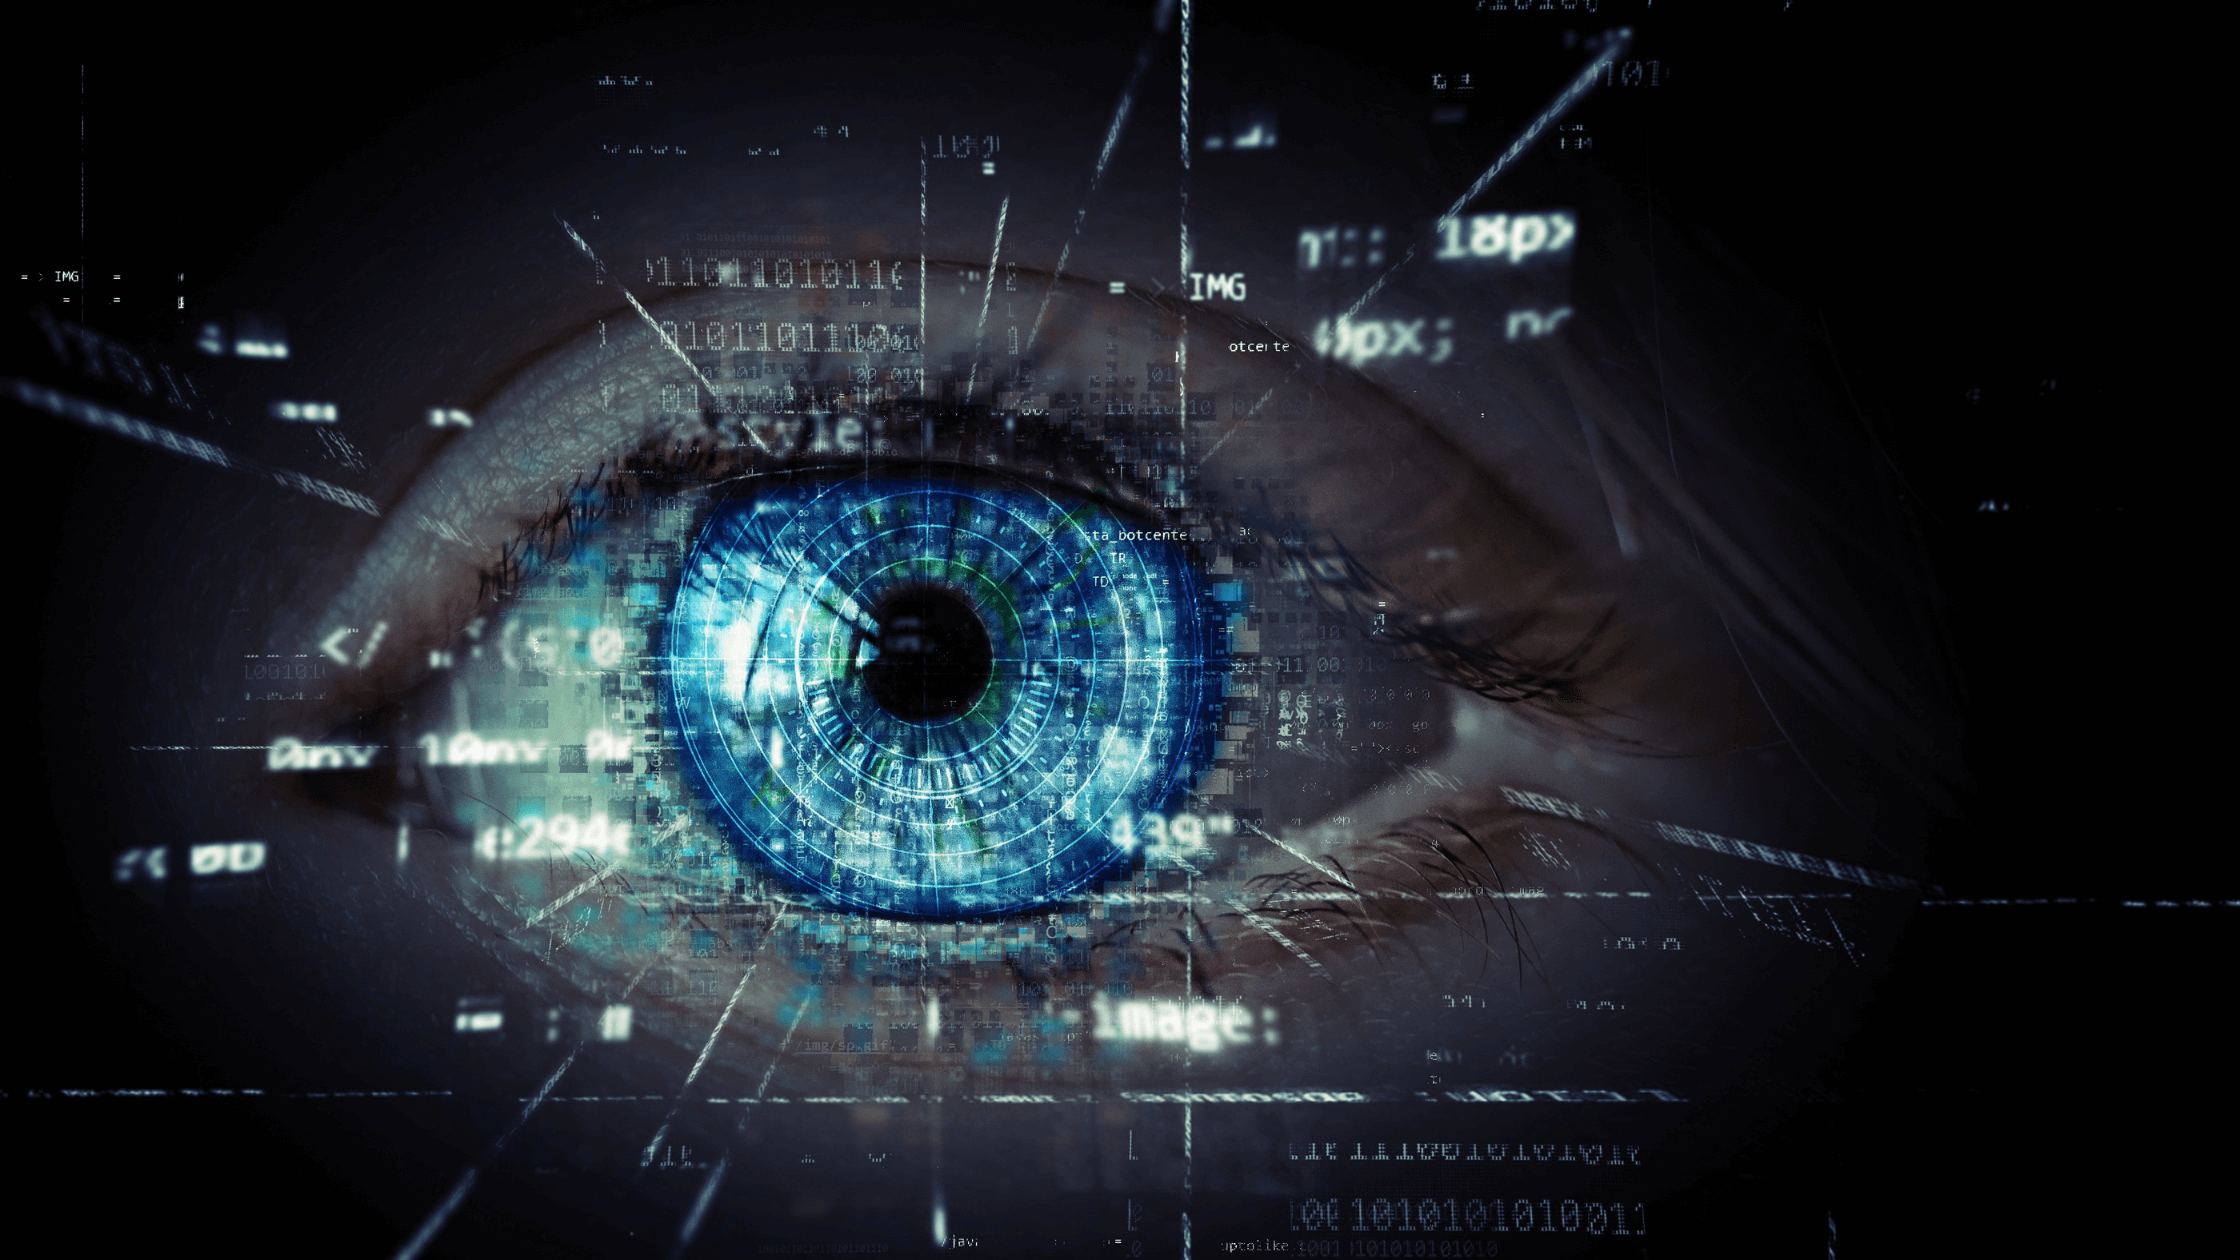 There is a human eye at the center of technology watching over it.